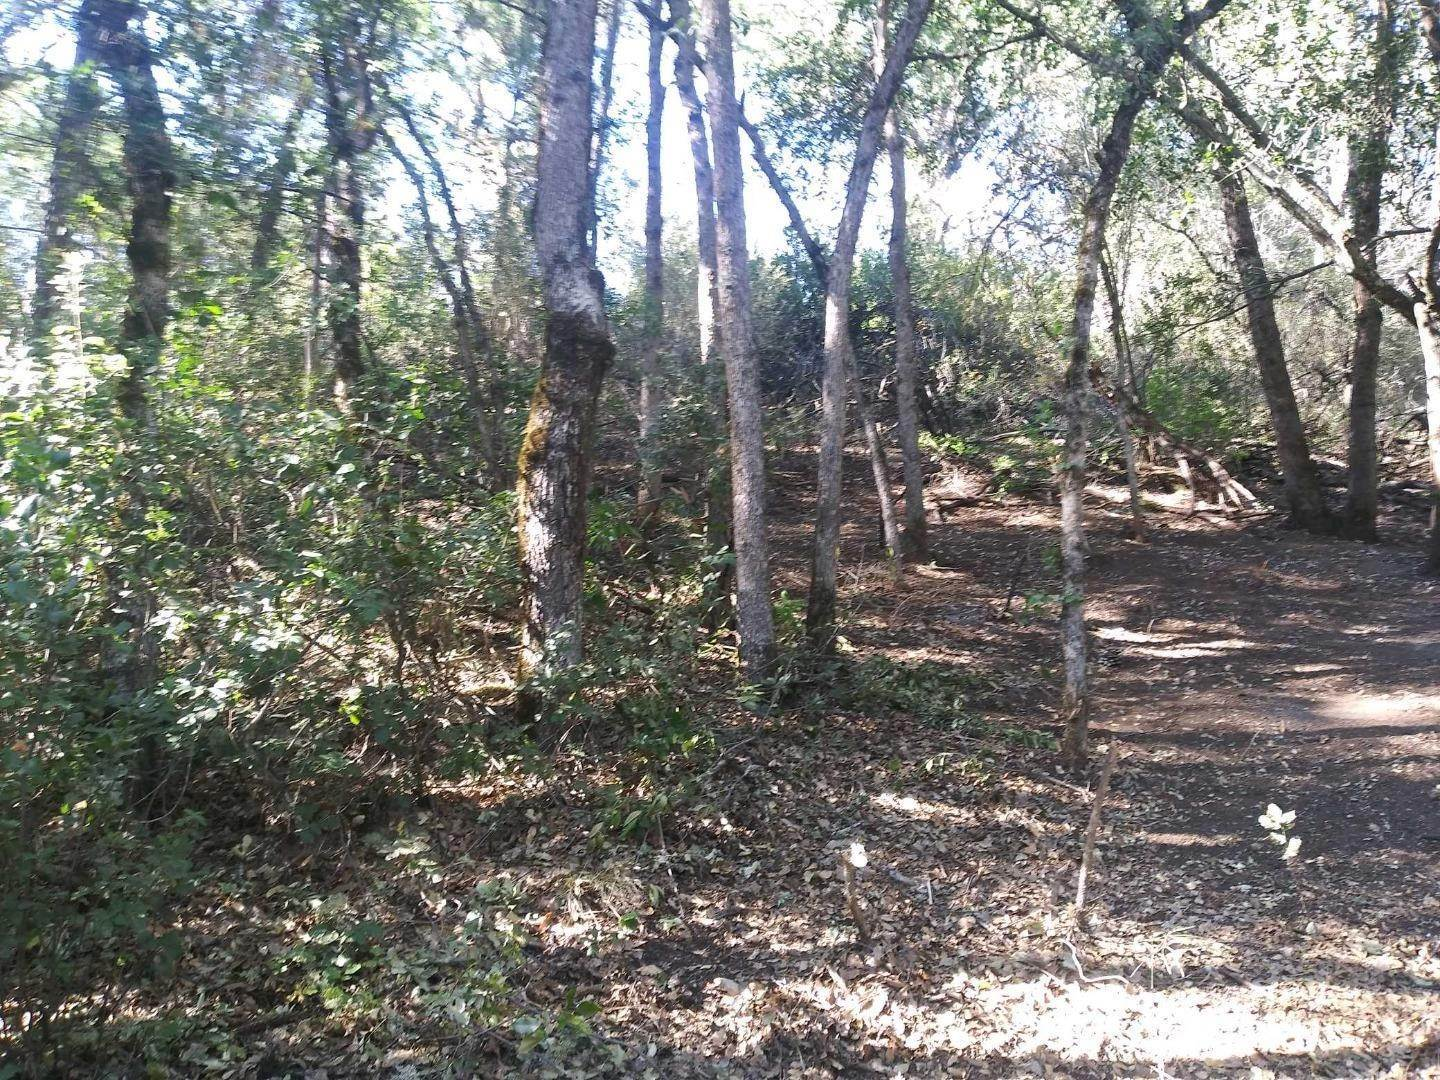 Land / Lots for Sale at 15345 Birch Avenue Clearlake, California 95422 United States